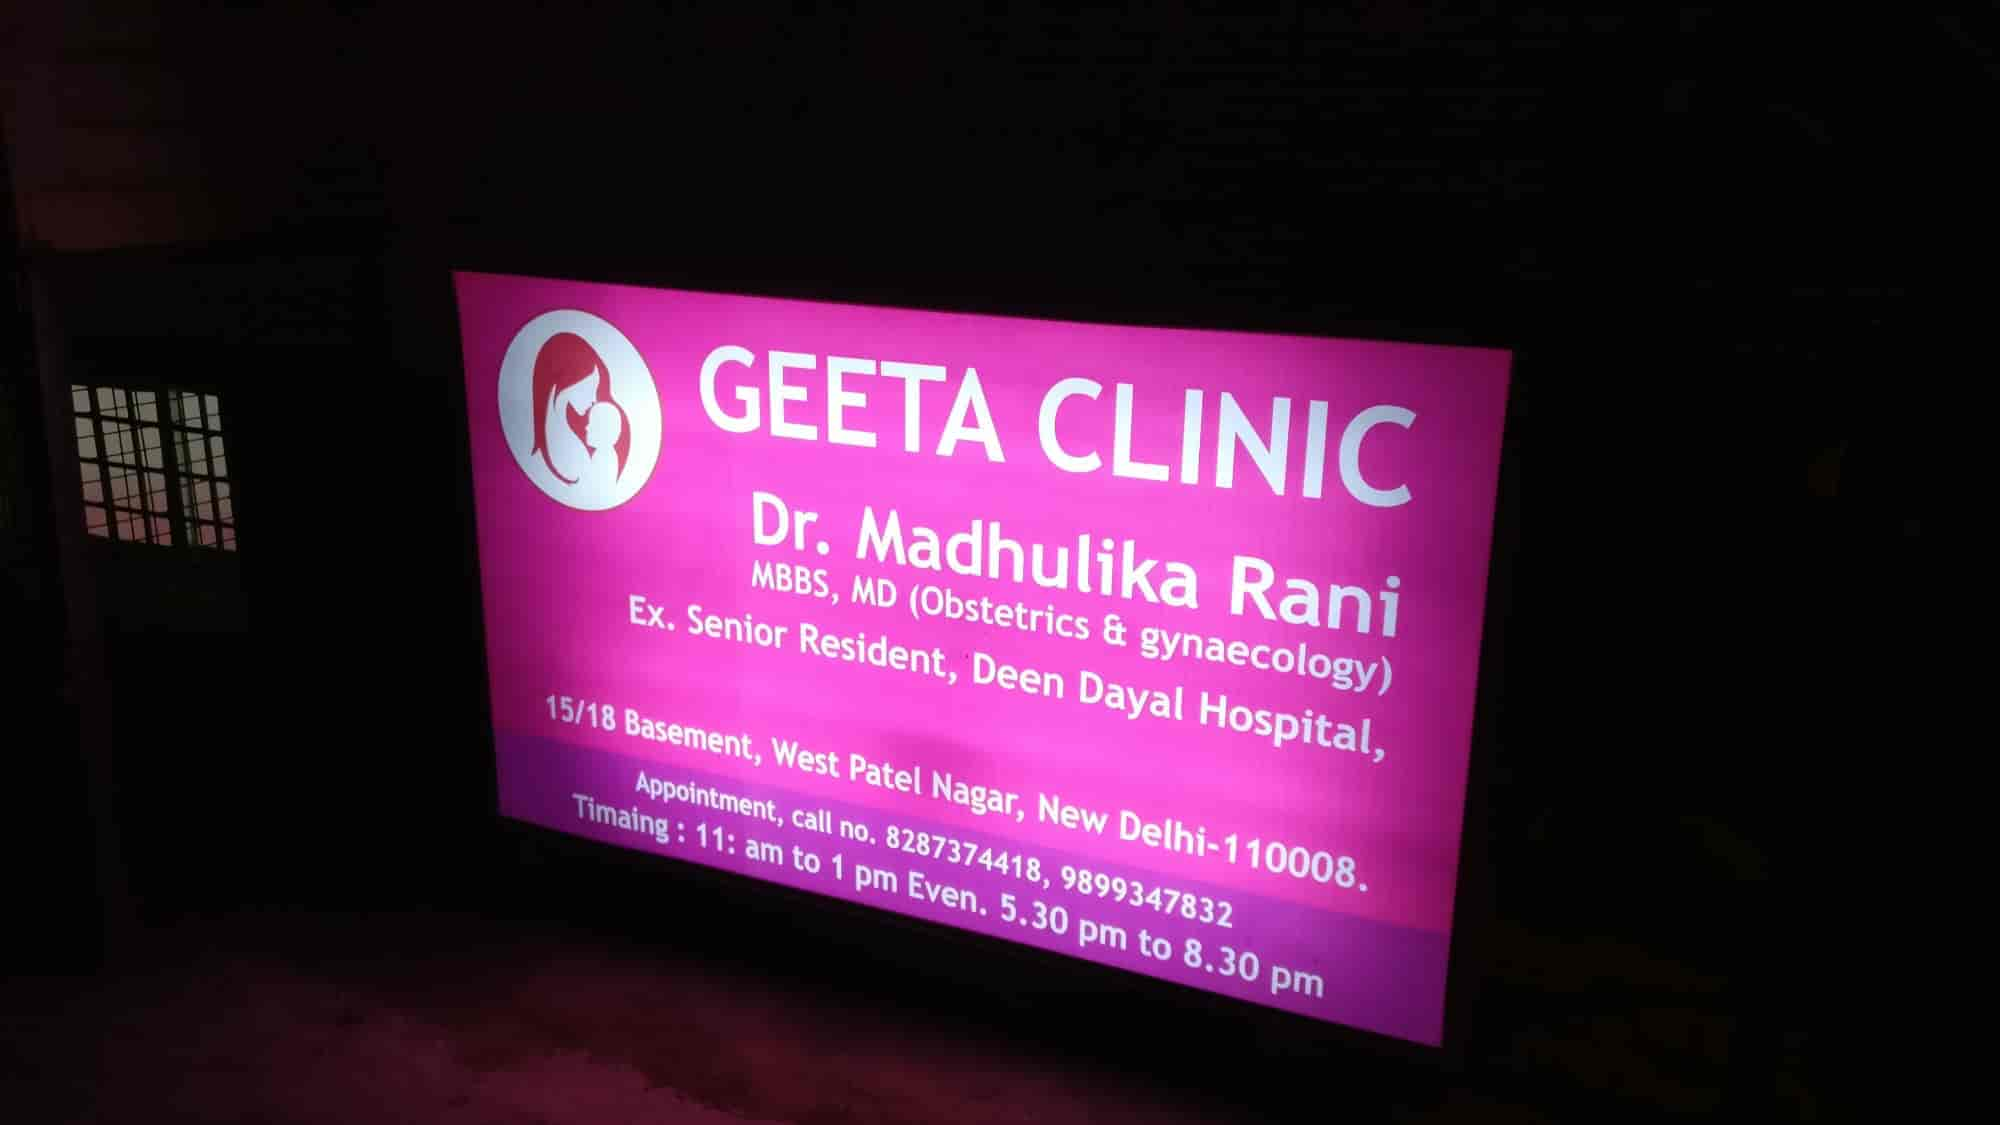 Geeta Clinic Photos, West Patel Nagar, Delhi- Pictures & Images